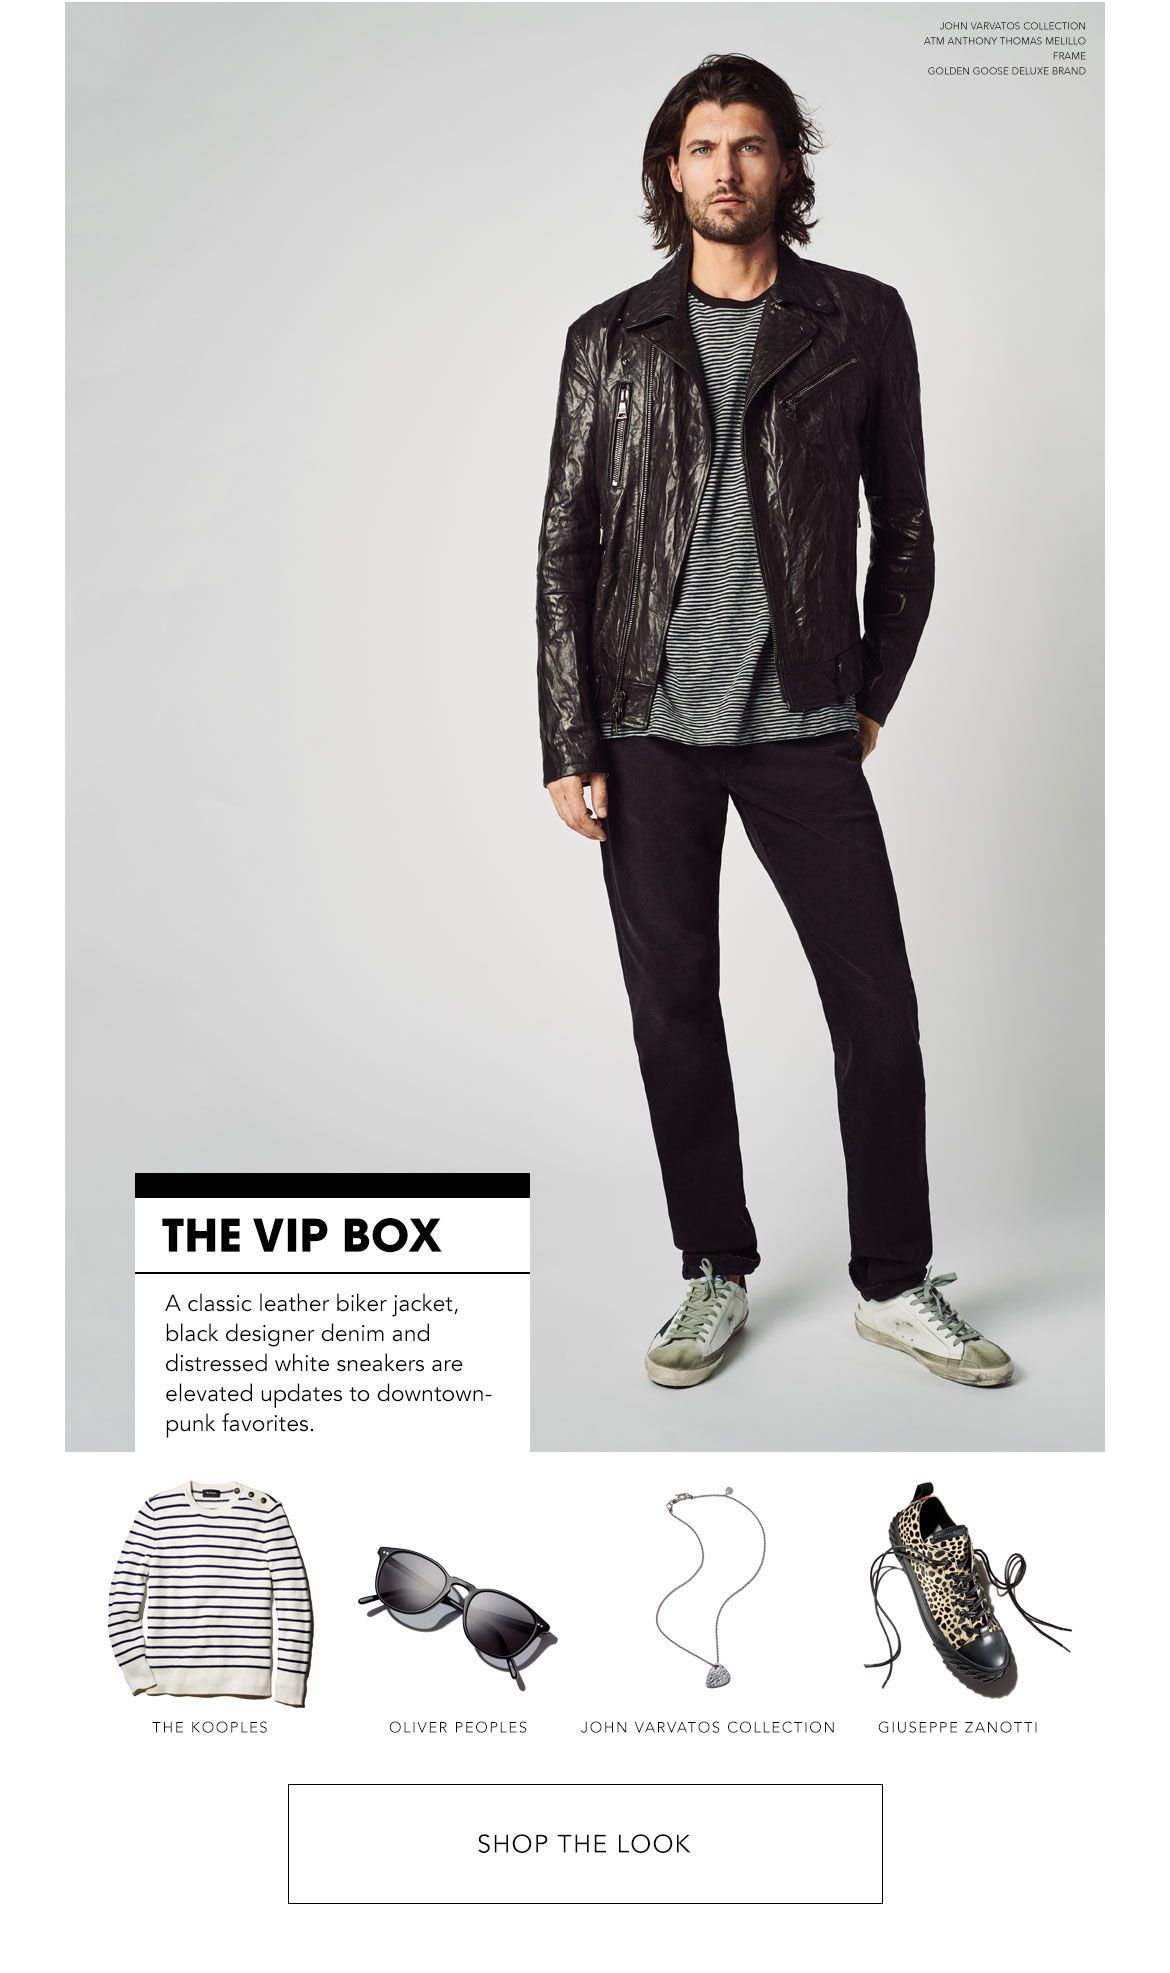 Styled for the VIP Box